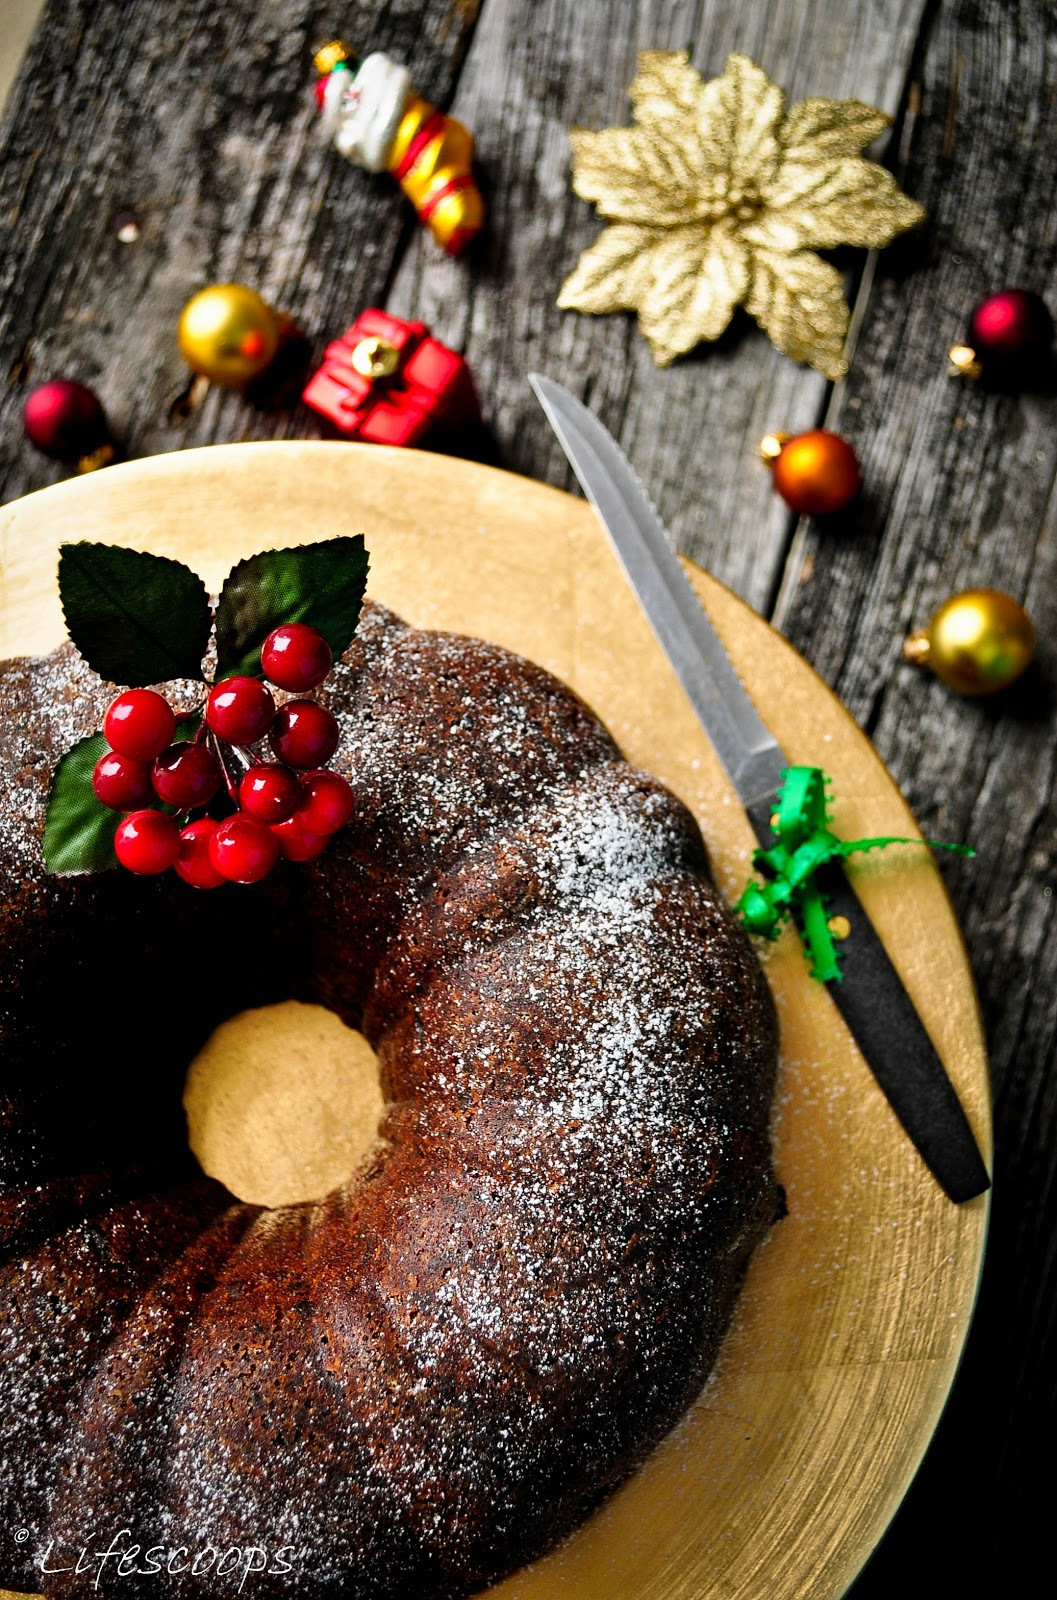 Life Scoops Christmas Fruit Cake Kerala Plum Cake